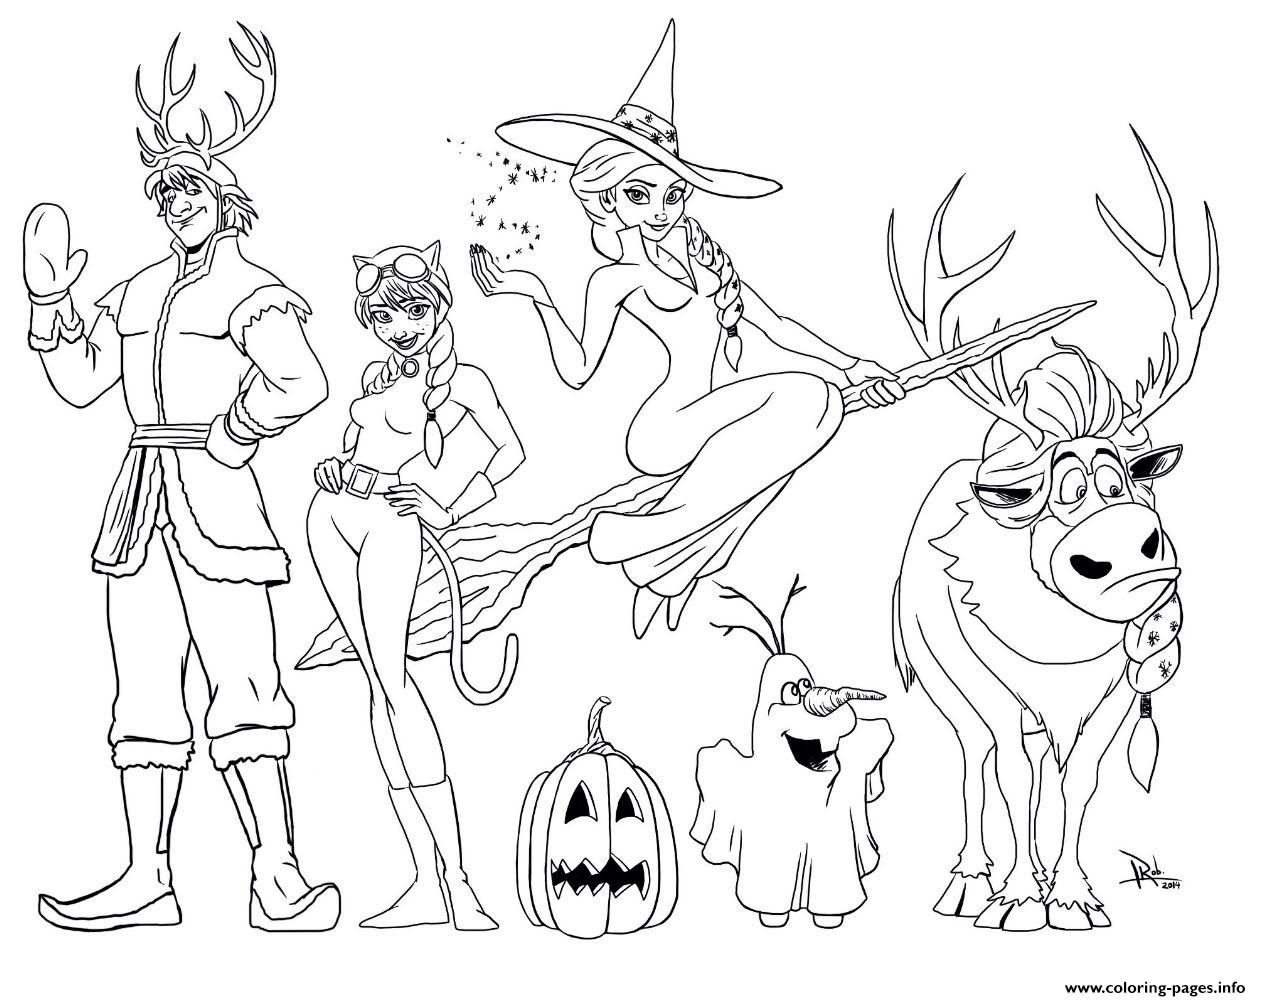 Print frozen halloween coloring pages | Coloring Pages | Pinterest ...